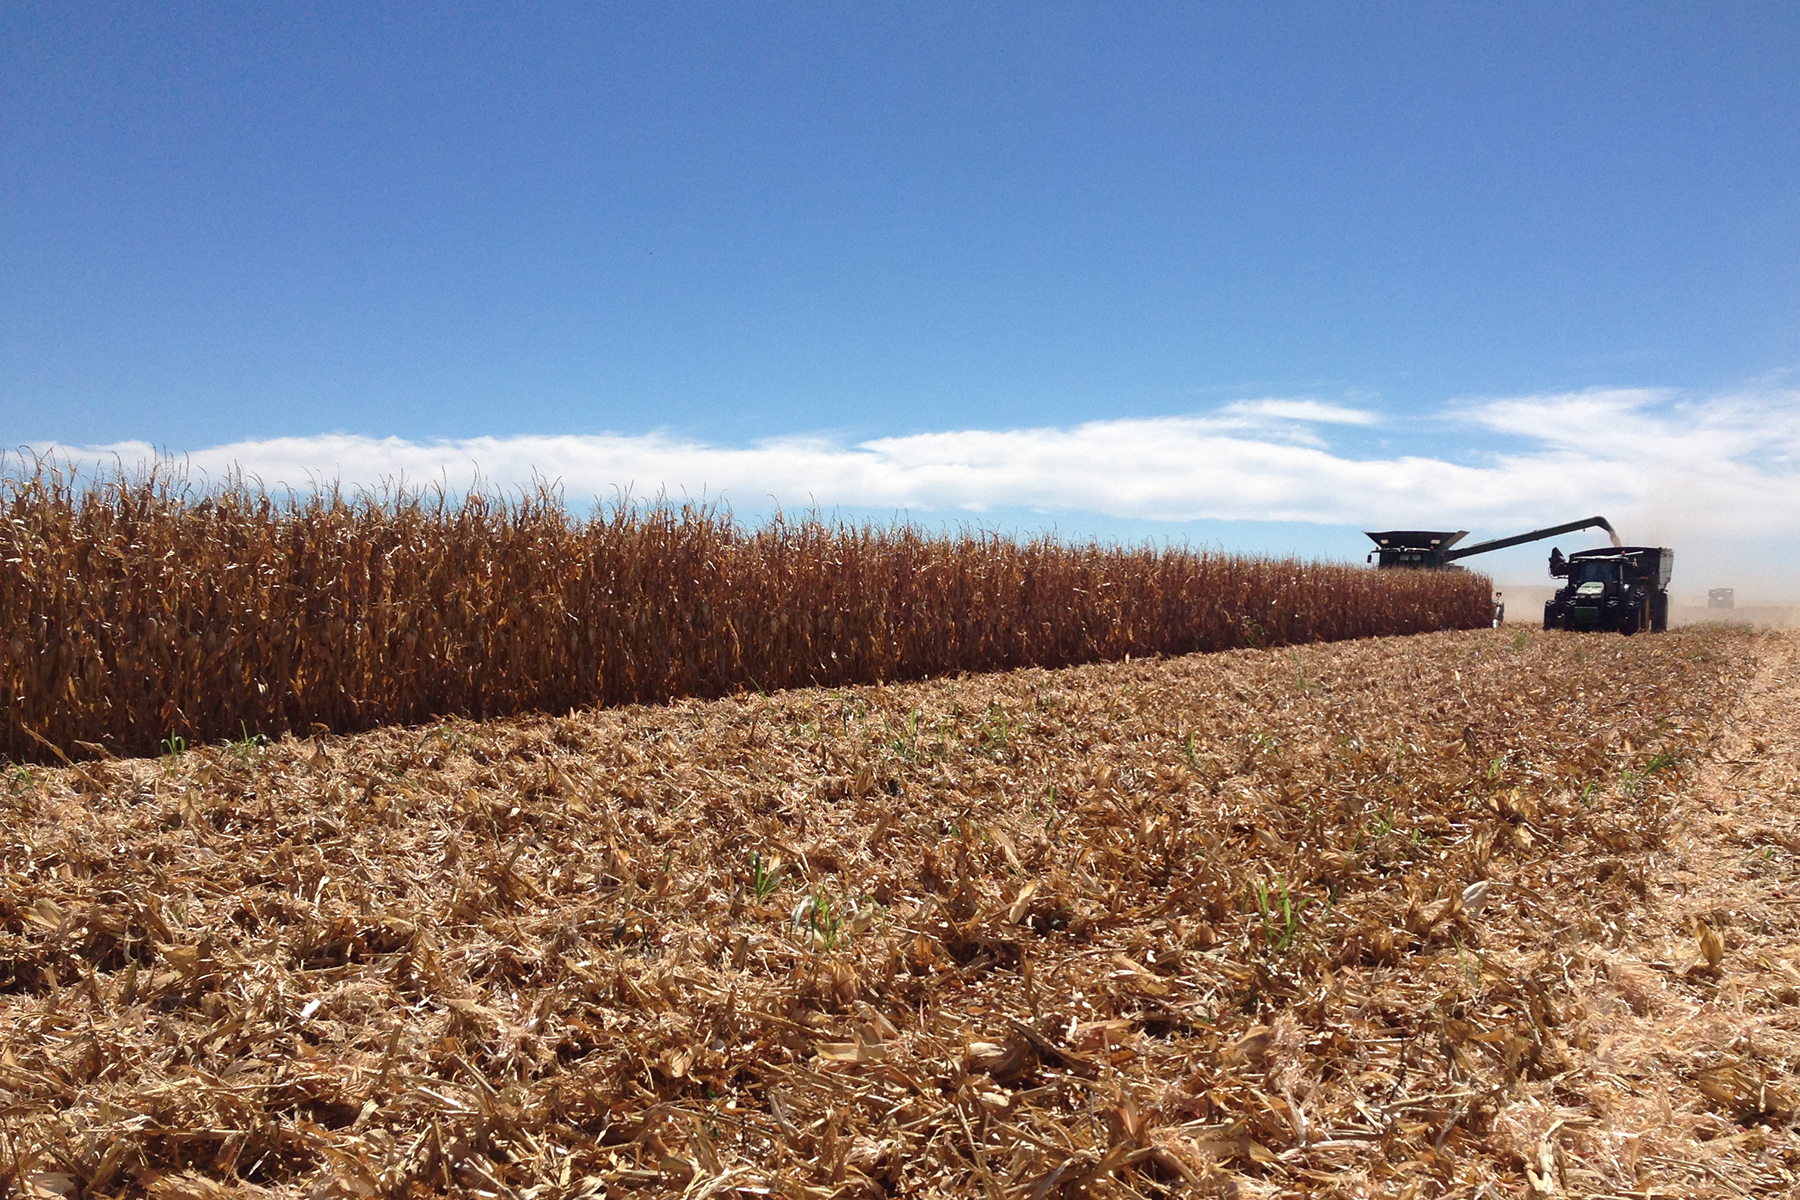 Field being harvested